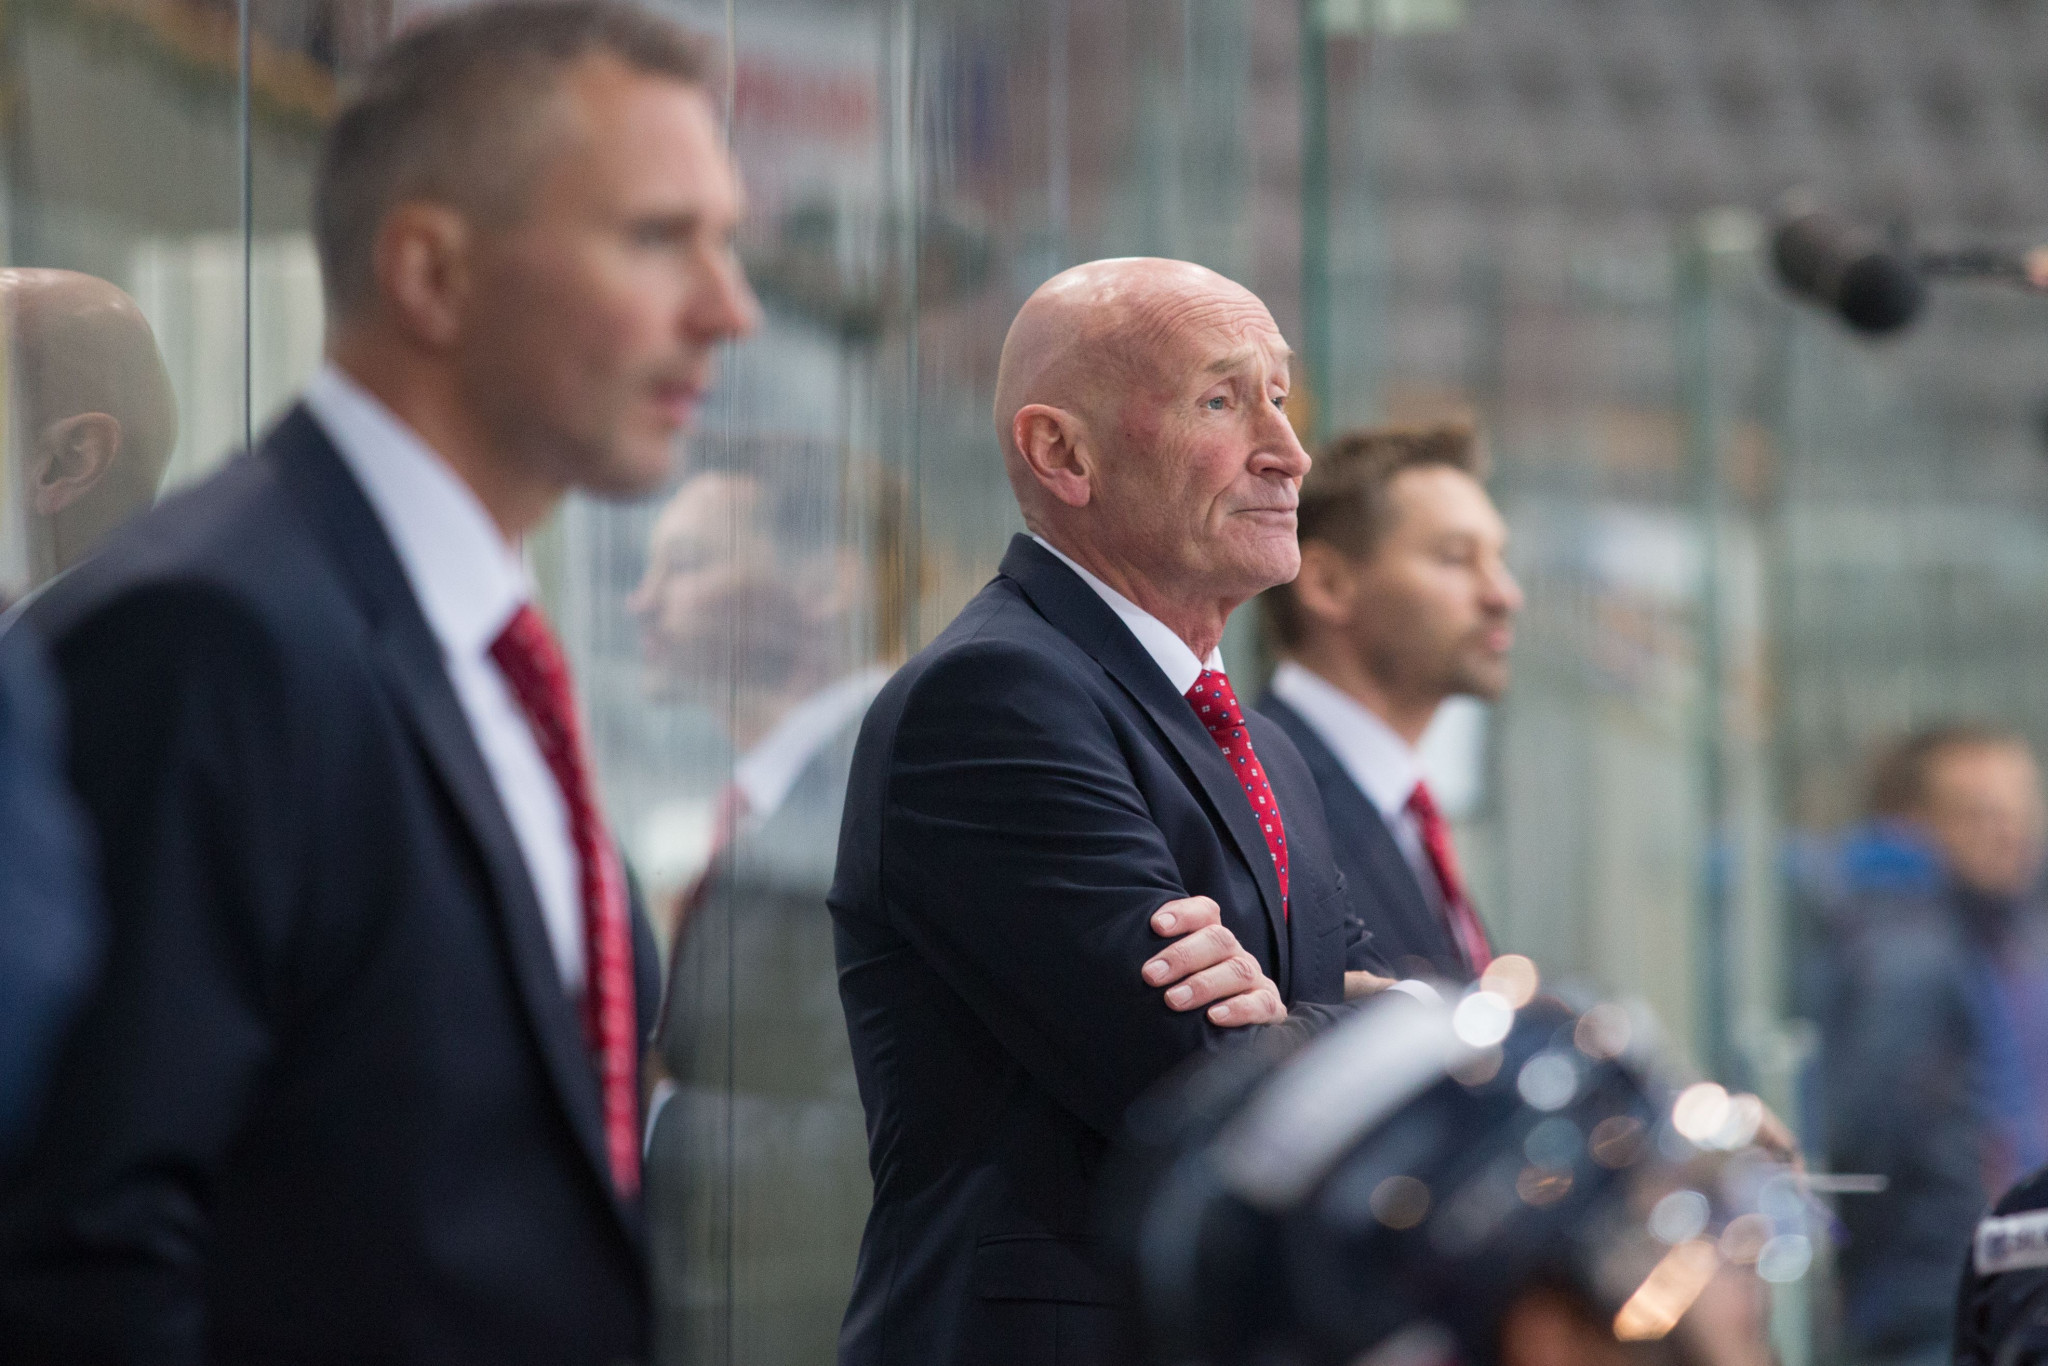 Craig Ramsay will remain as head coach of Slovakia's men's ice hockey team ©Getty Images